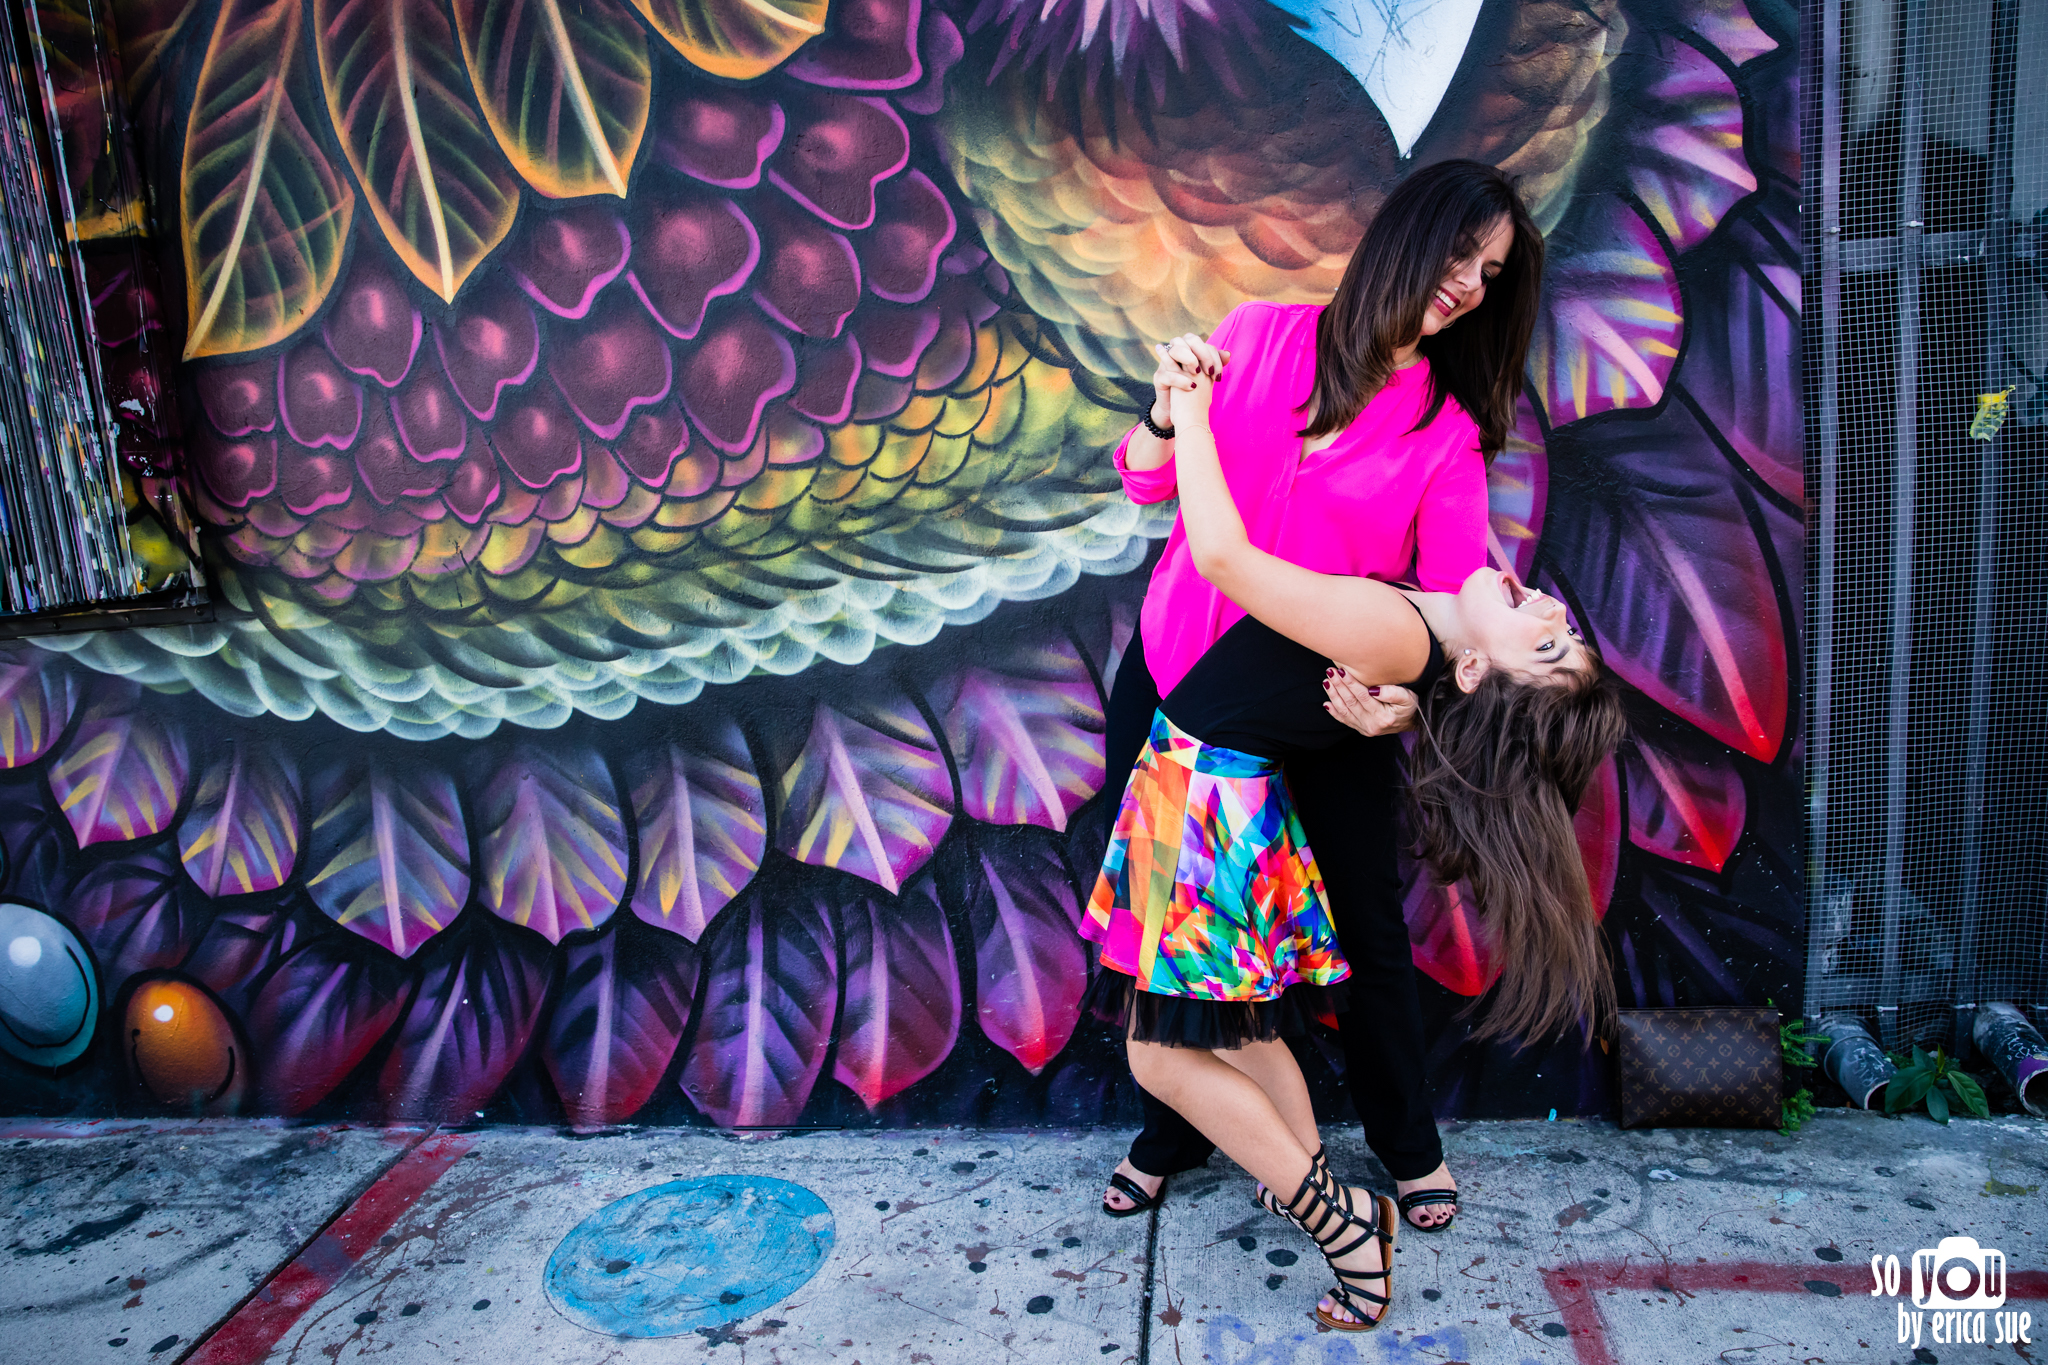 so-you-by-erica-sue-family-photographer-miami-fl-wynwood-mother-daughter-3510.jpg